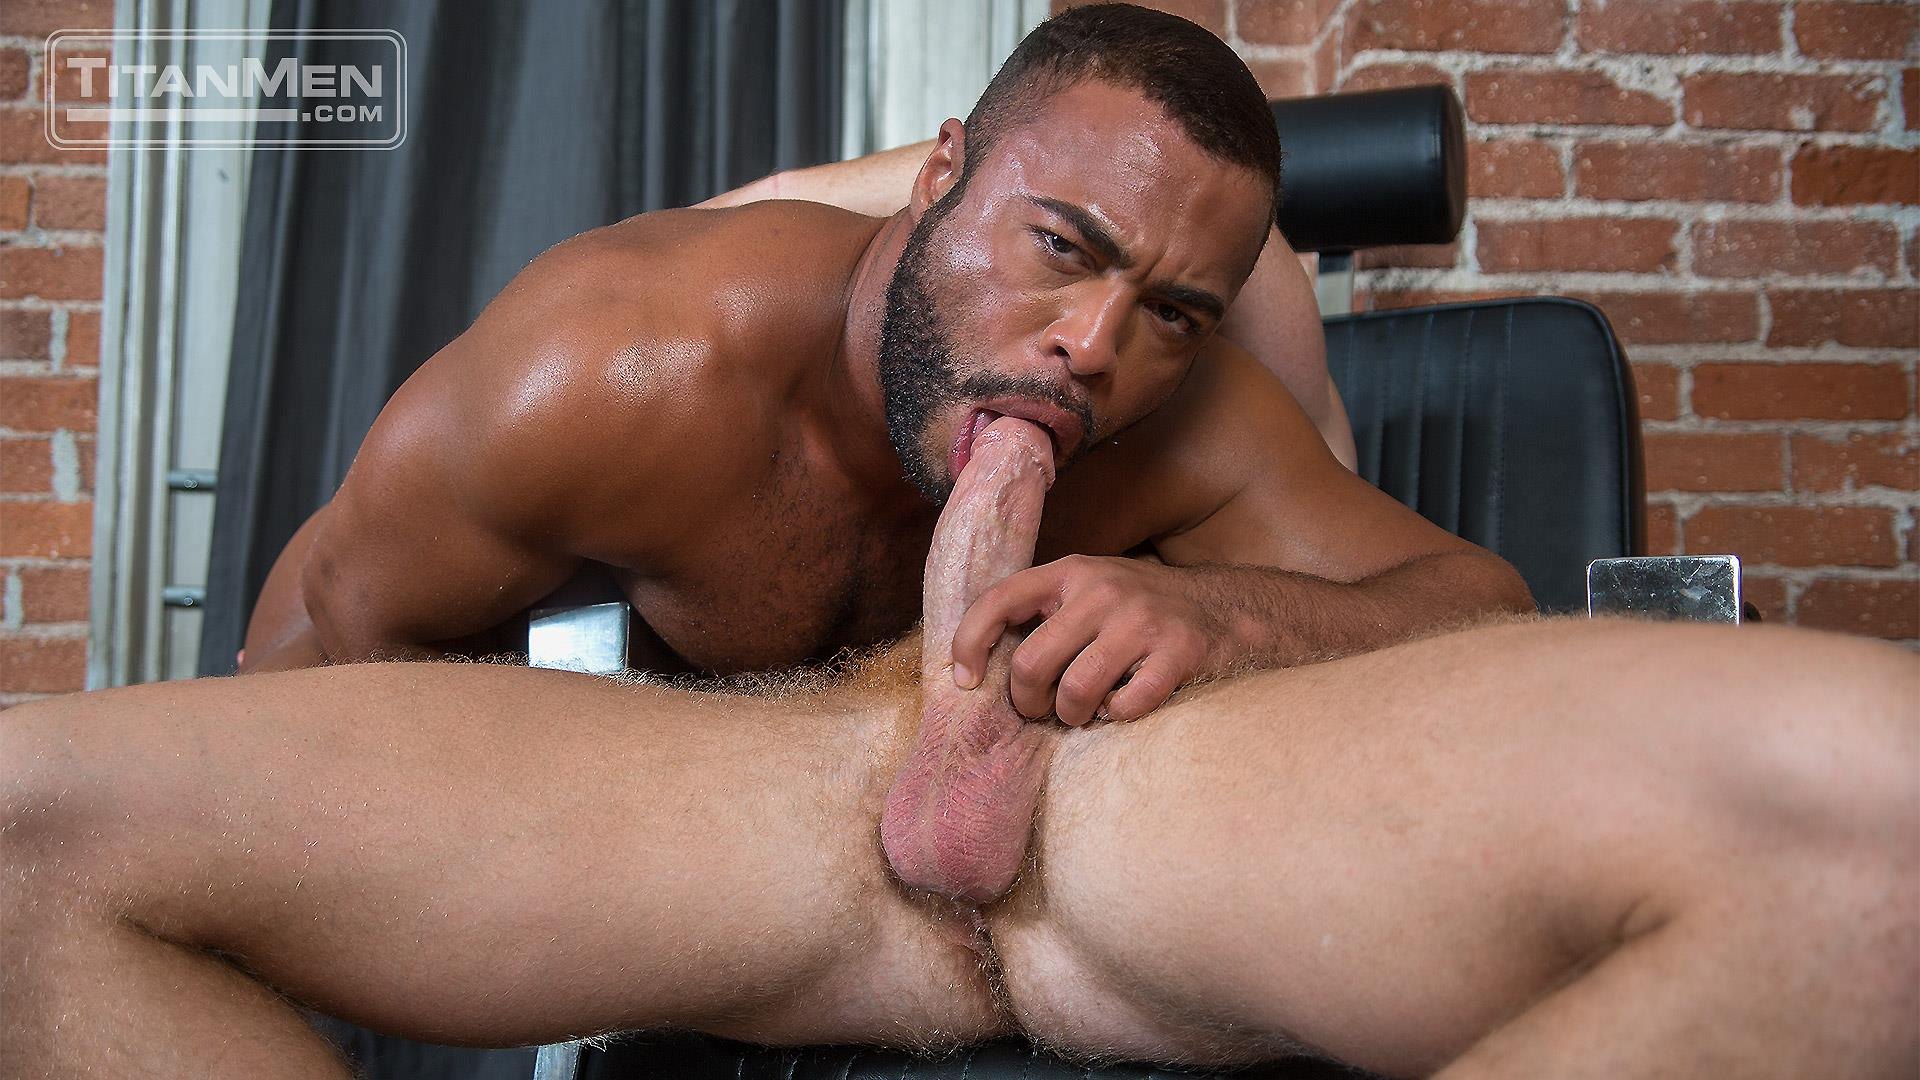 TitanMen-Micah-Brandt-and-Bennett-Anthony-Interracial-Muscle-Hunks-Flip-Fucking-Amateur-Gay-Porn-06 Micah Brandt and Bennett Anthony Flip-Fucking With Their Big Dicks